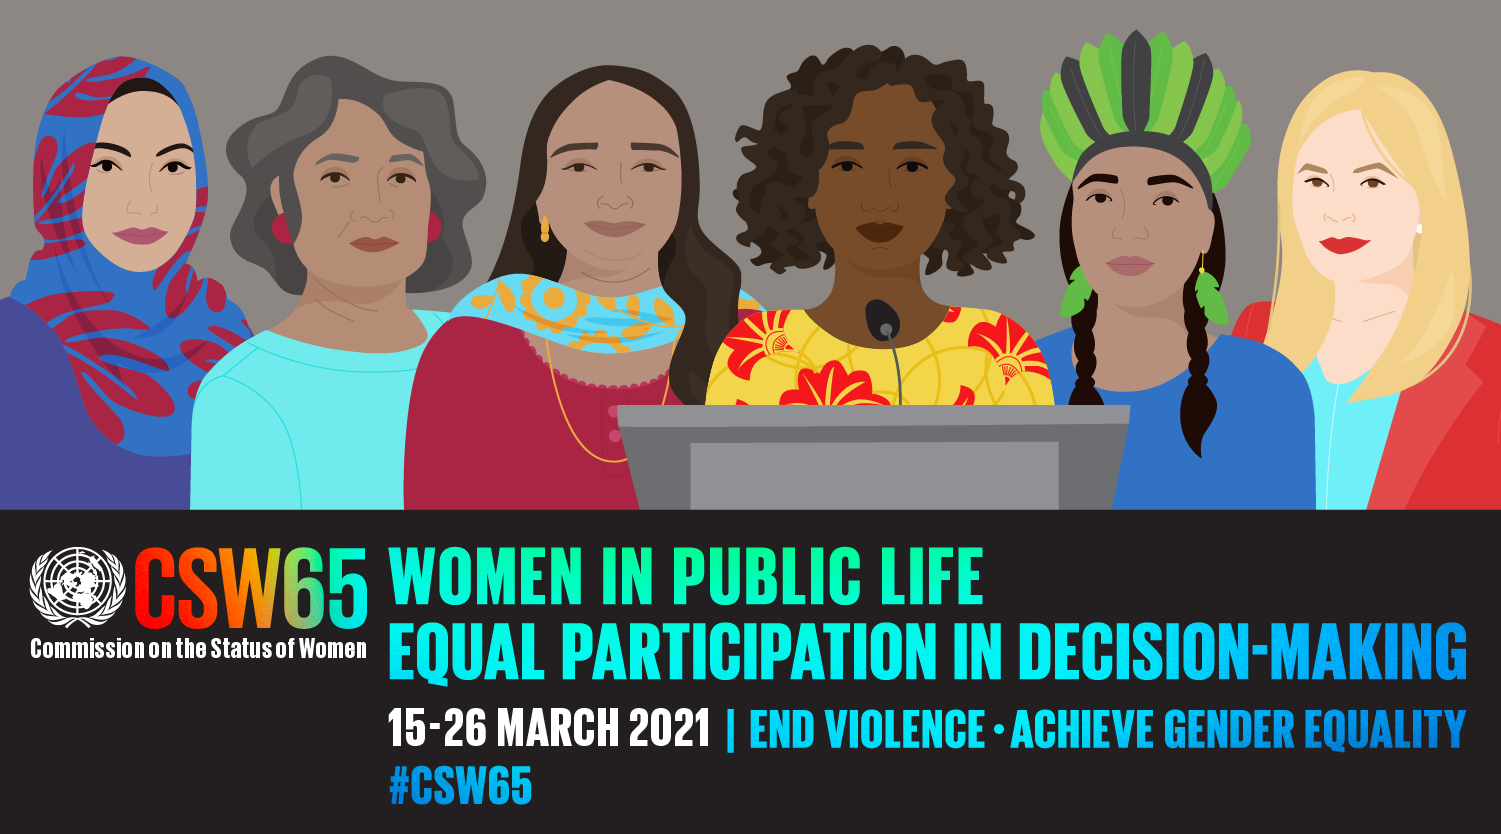 Commission on the Status of Women International Women's Day Graphic